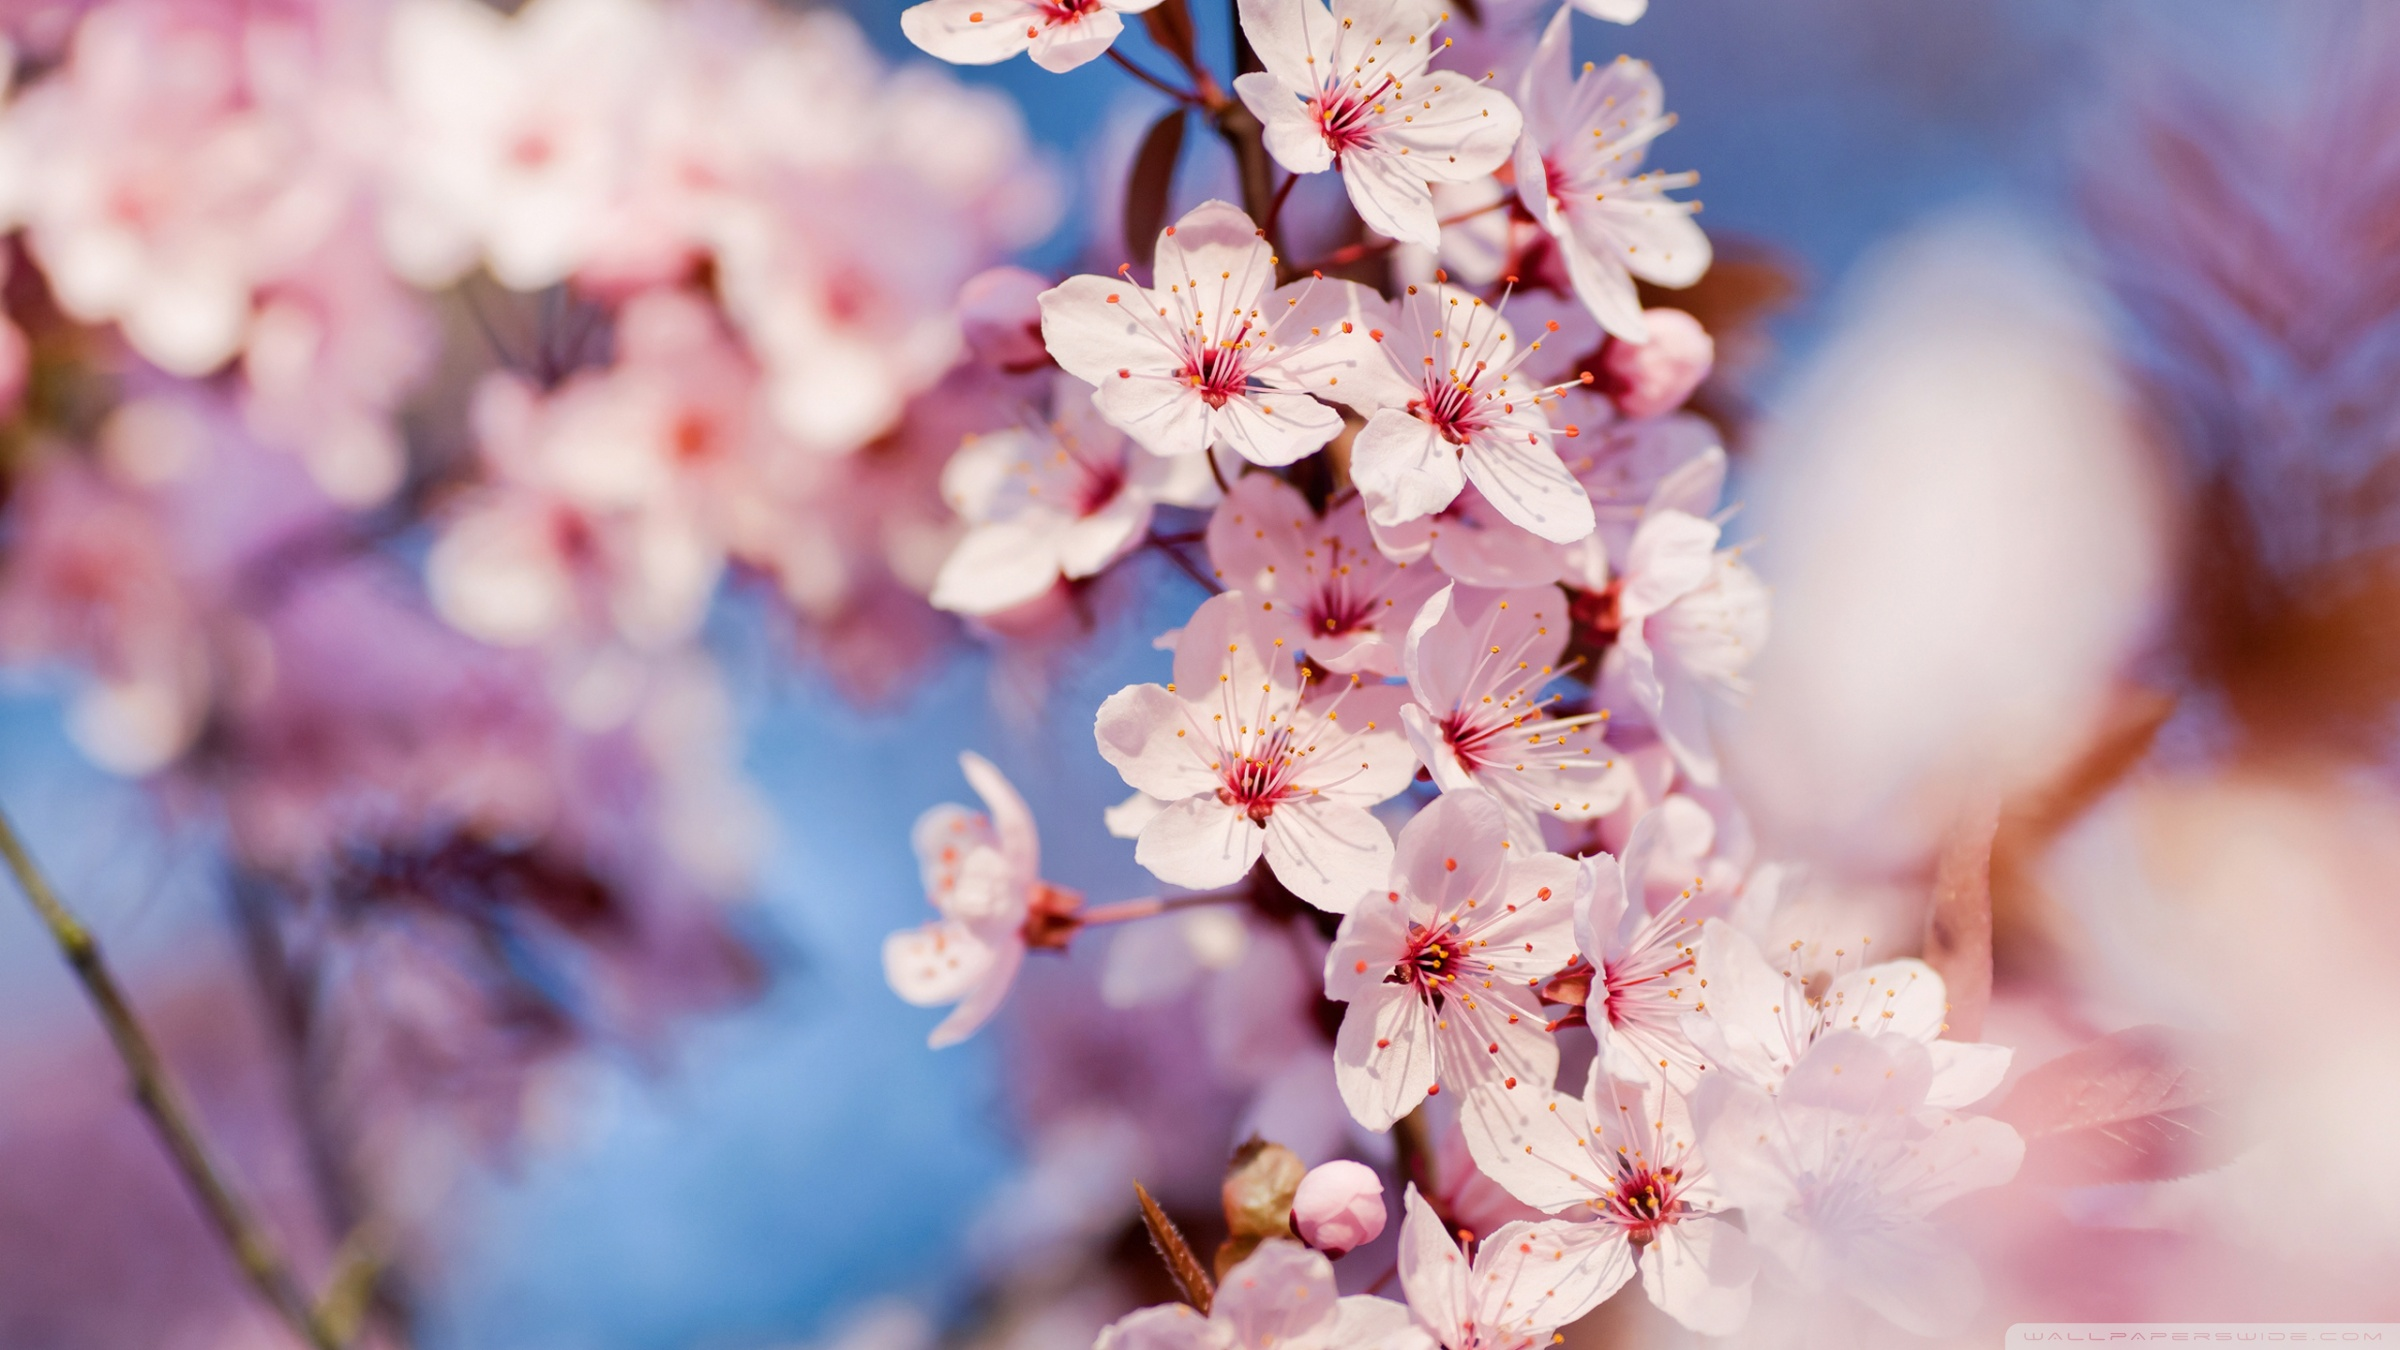 Blooming Pink Cherry Blossom Pink Color Wallpaper